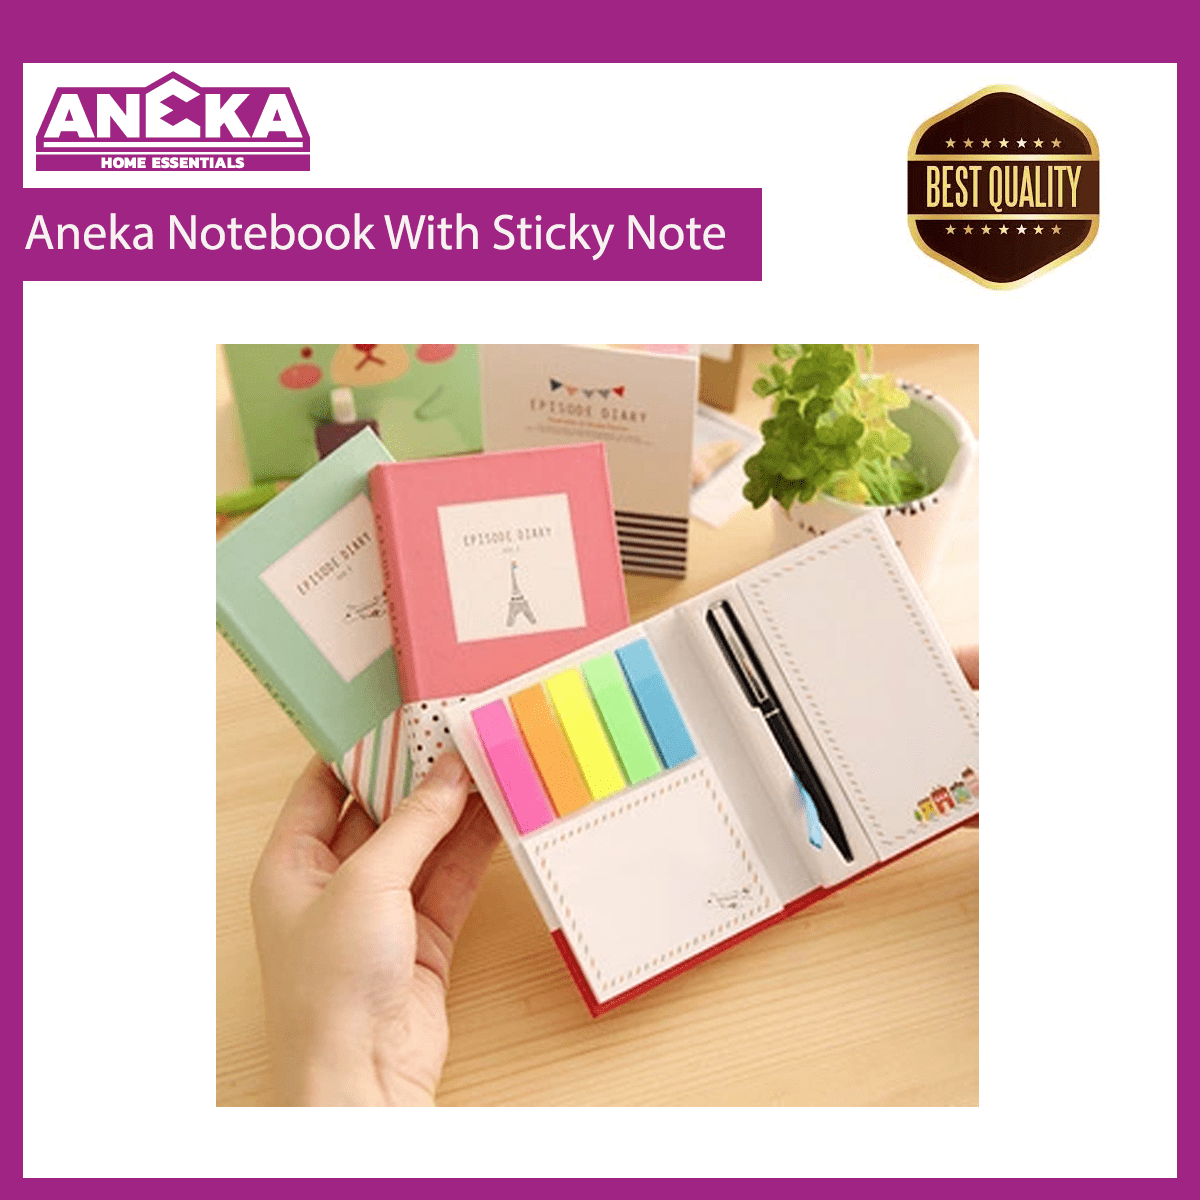 Aneka Notebook with Sticky Note